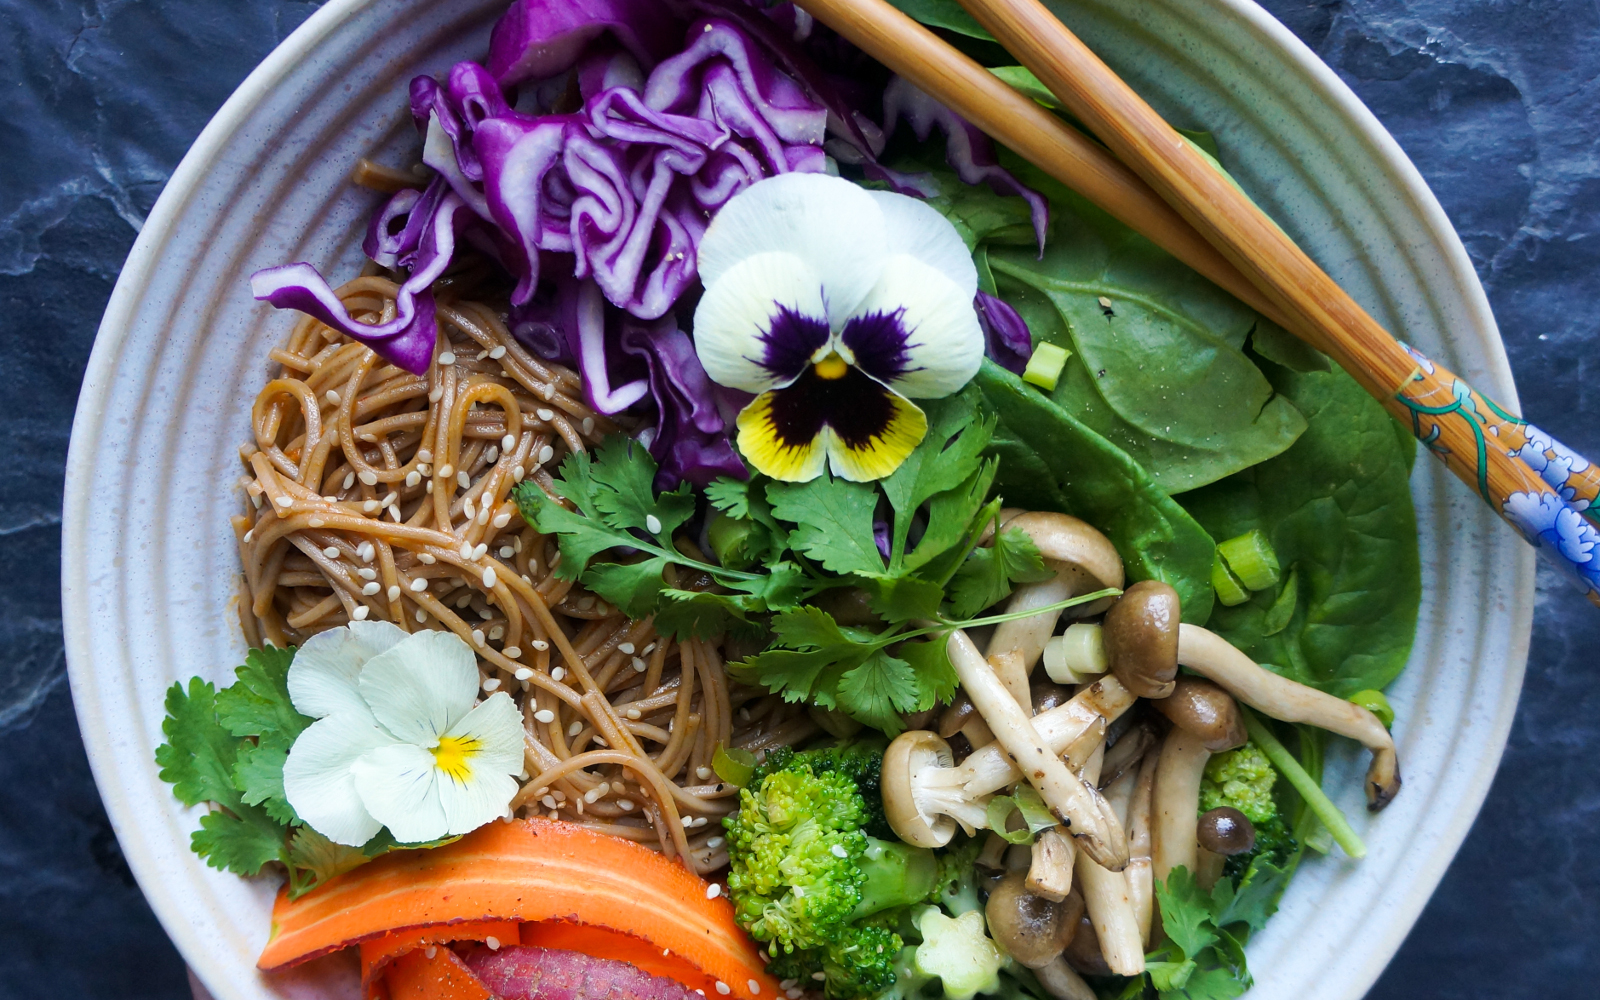 Thai Red Curry With Soba Noodles, Sauteed Shimeji Mushrooms, and Vegetables